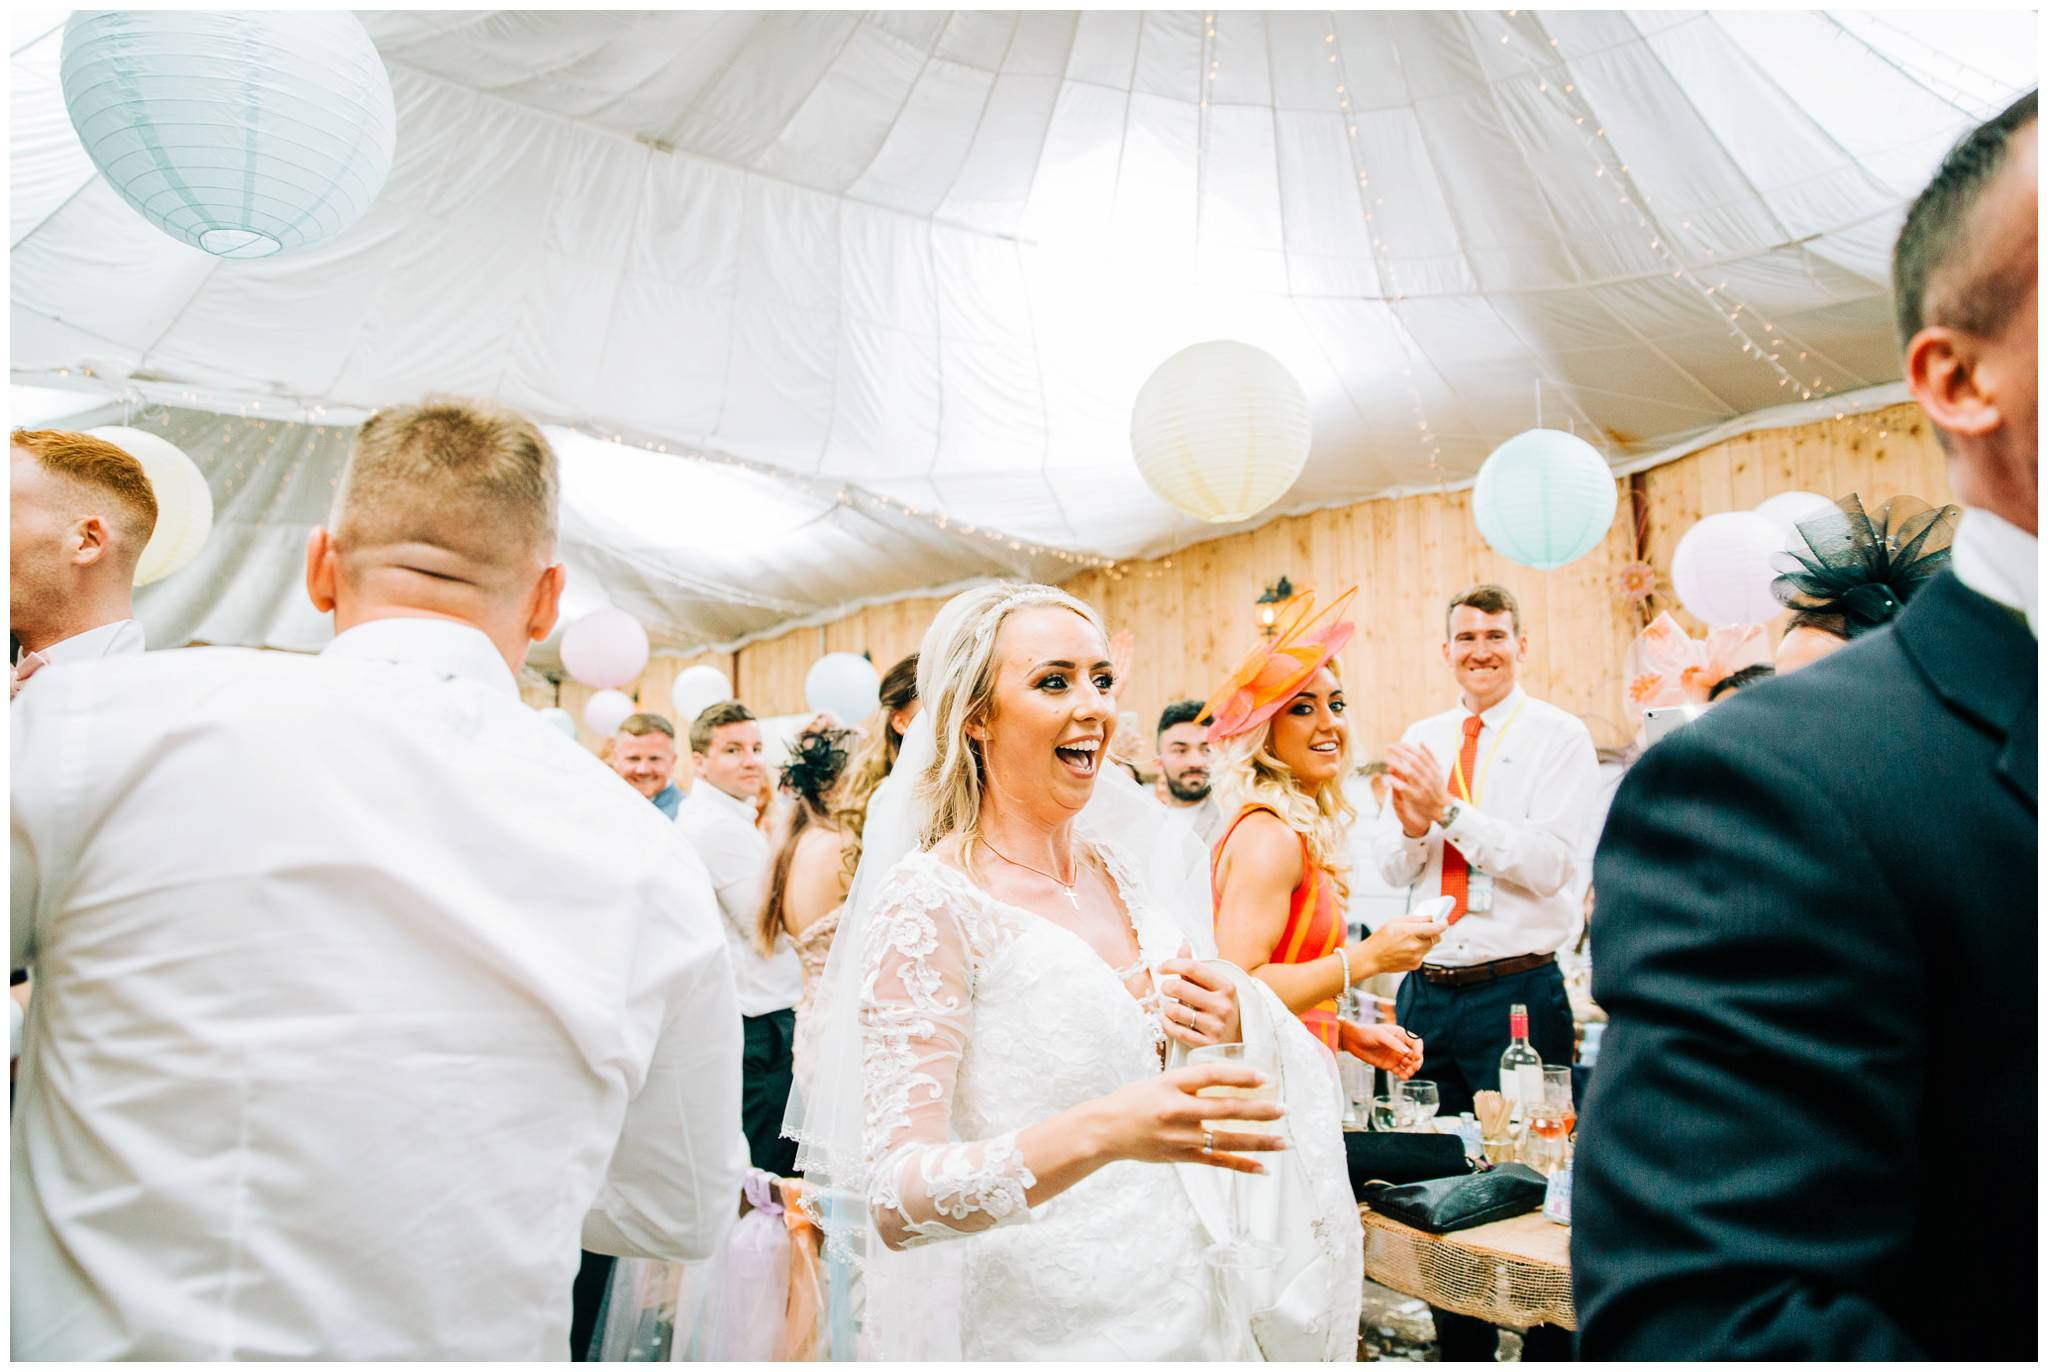 Festival wedding at Wellbeing Farm  - Bolton Wedding Photographer_0059.jpg